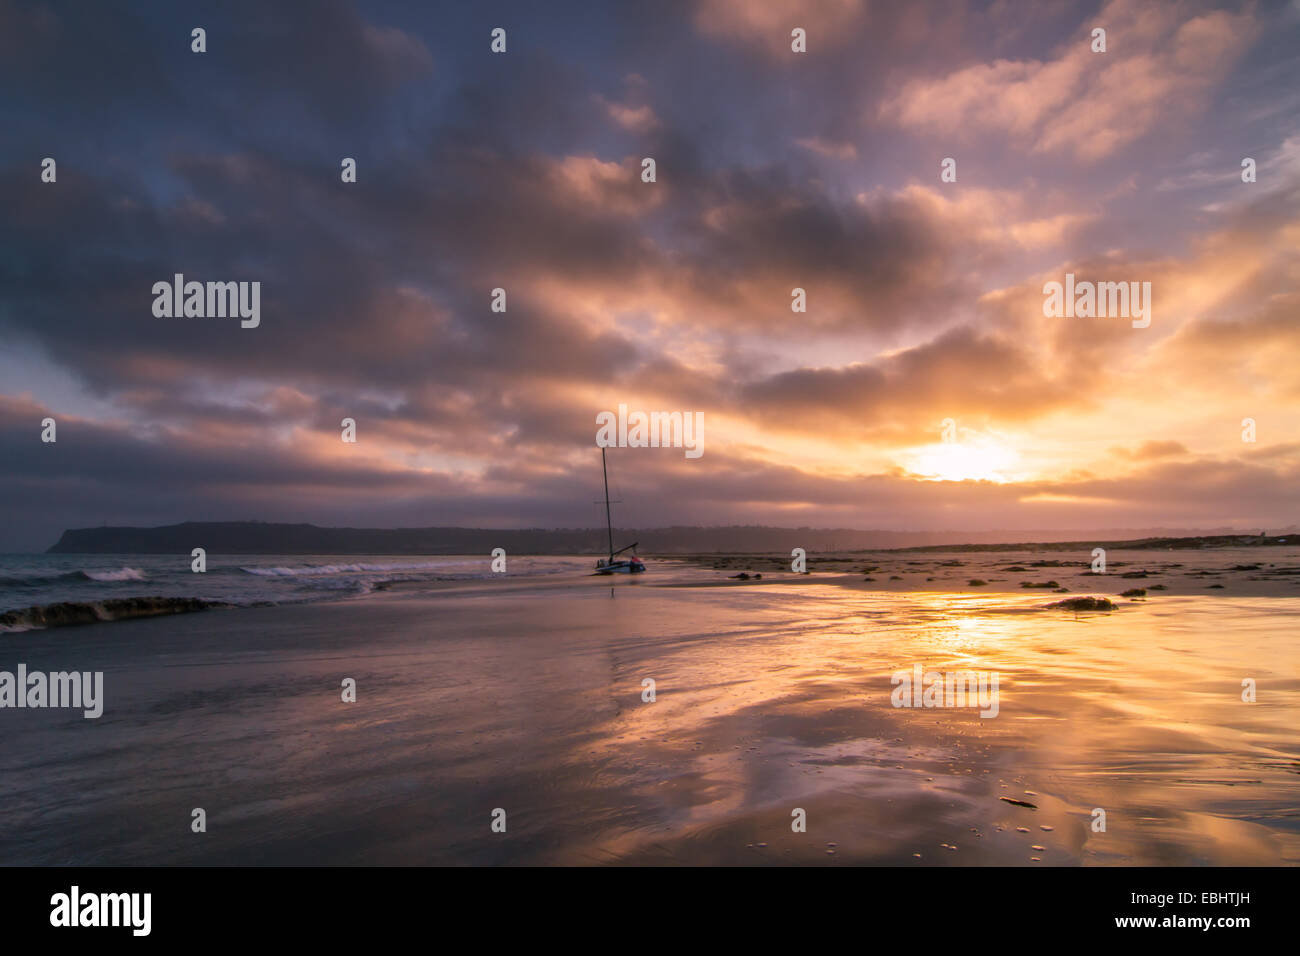 A stunning sunset over a sailboat reflected in the surf of Coronado Island near San Diego, California Stock Photo